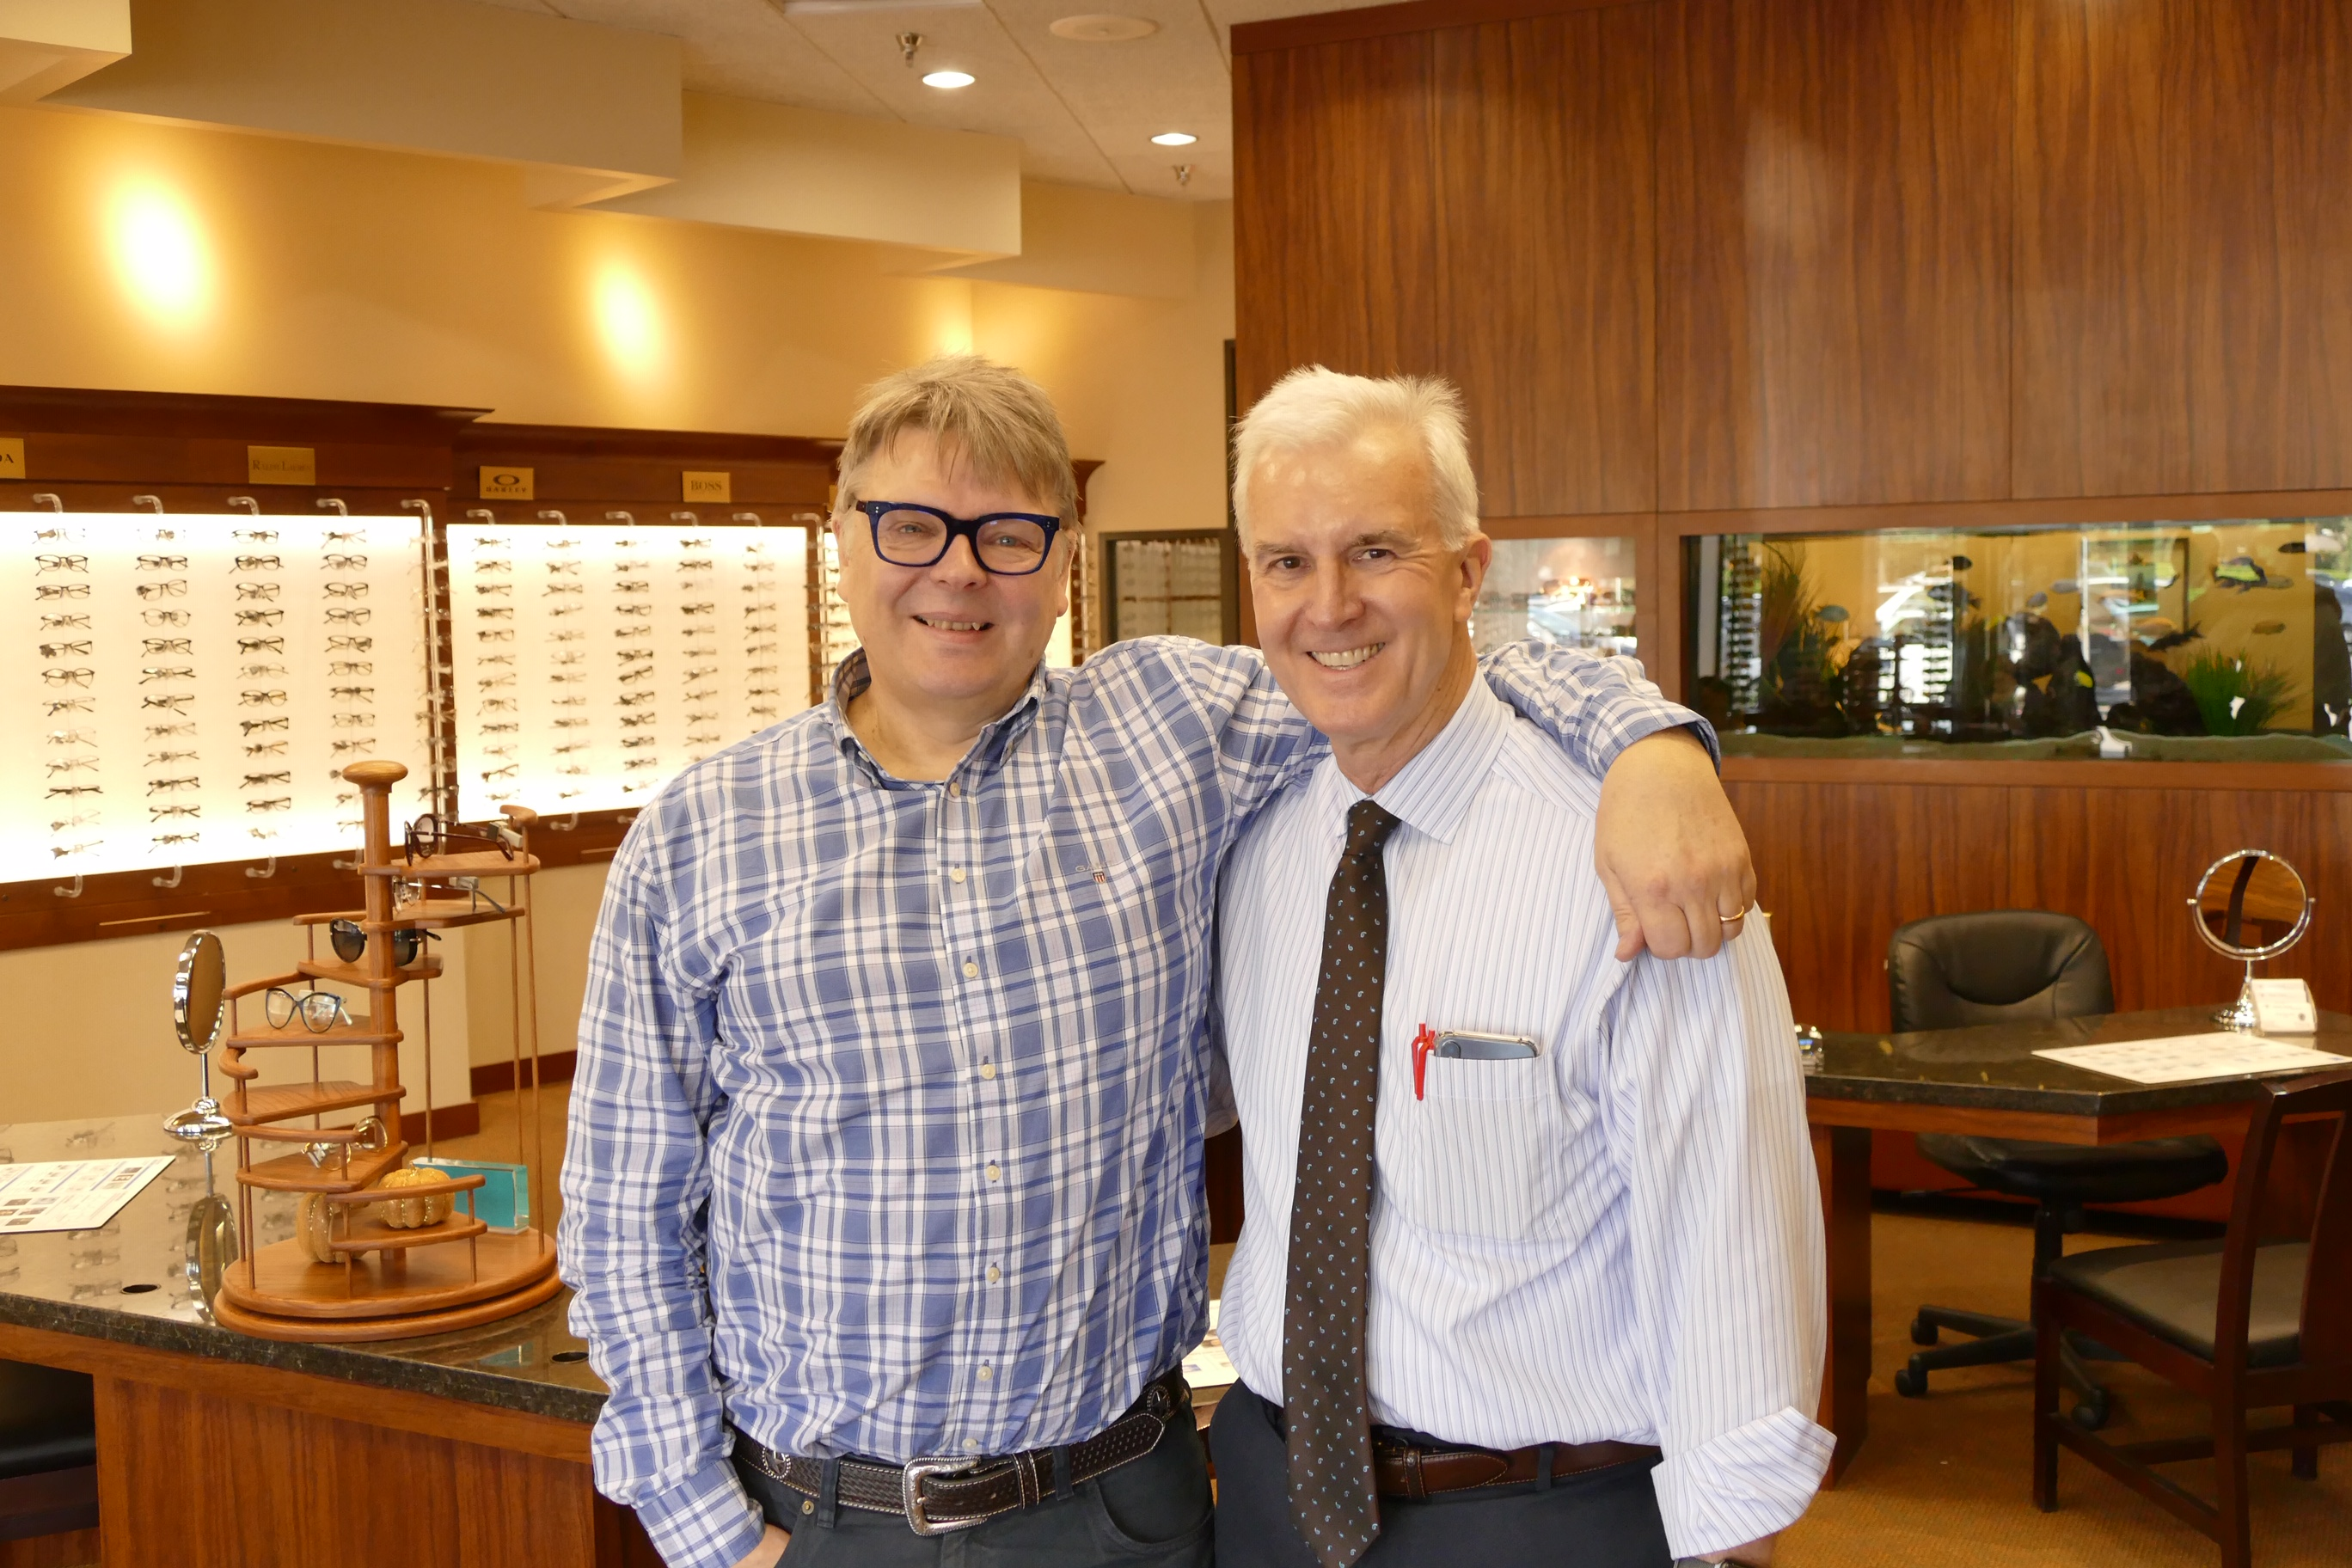 BBR chairman explores eye care in the USA